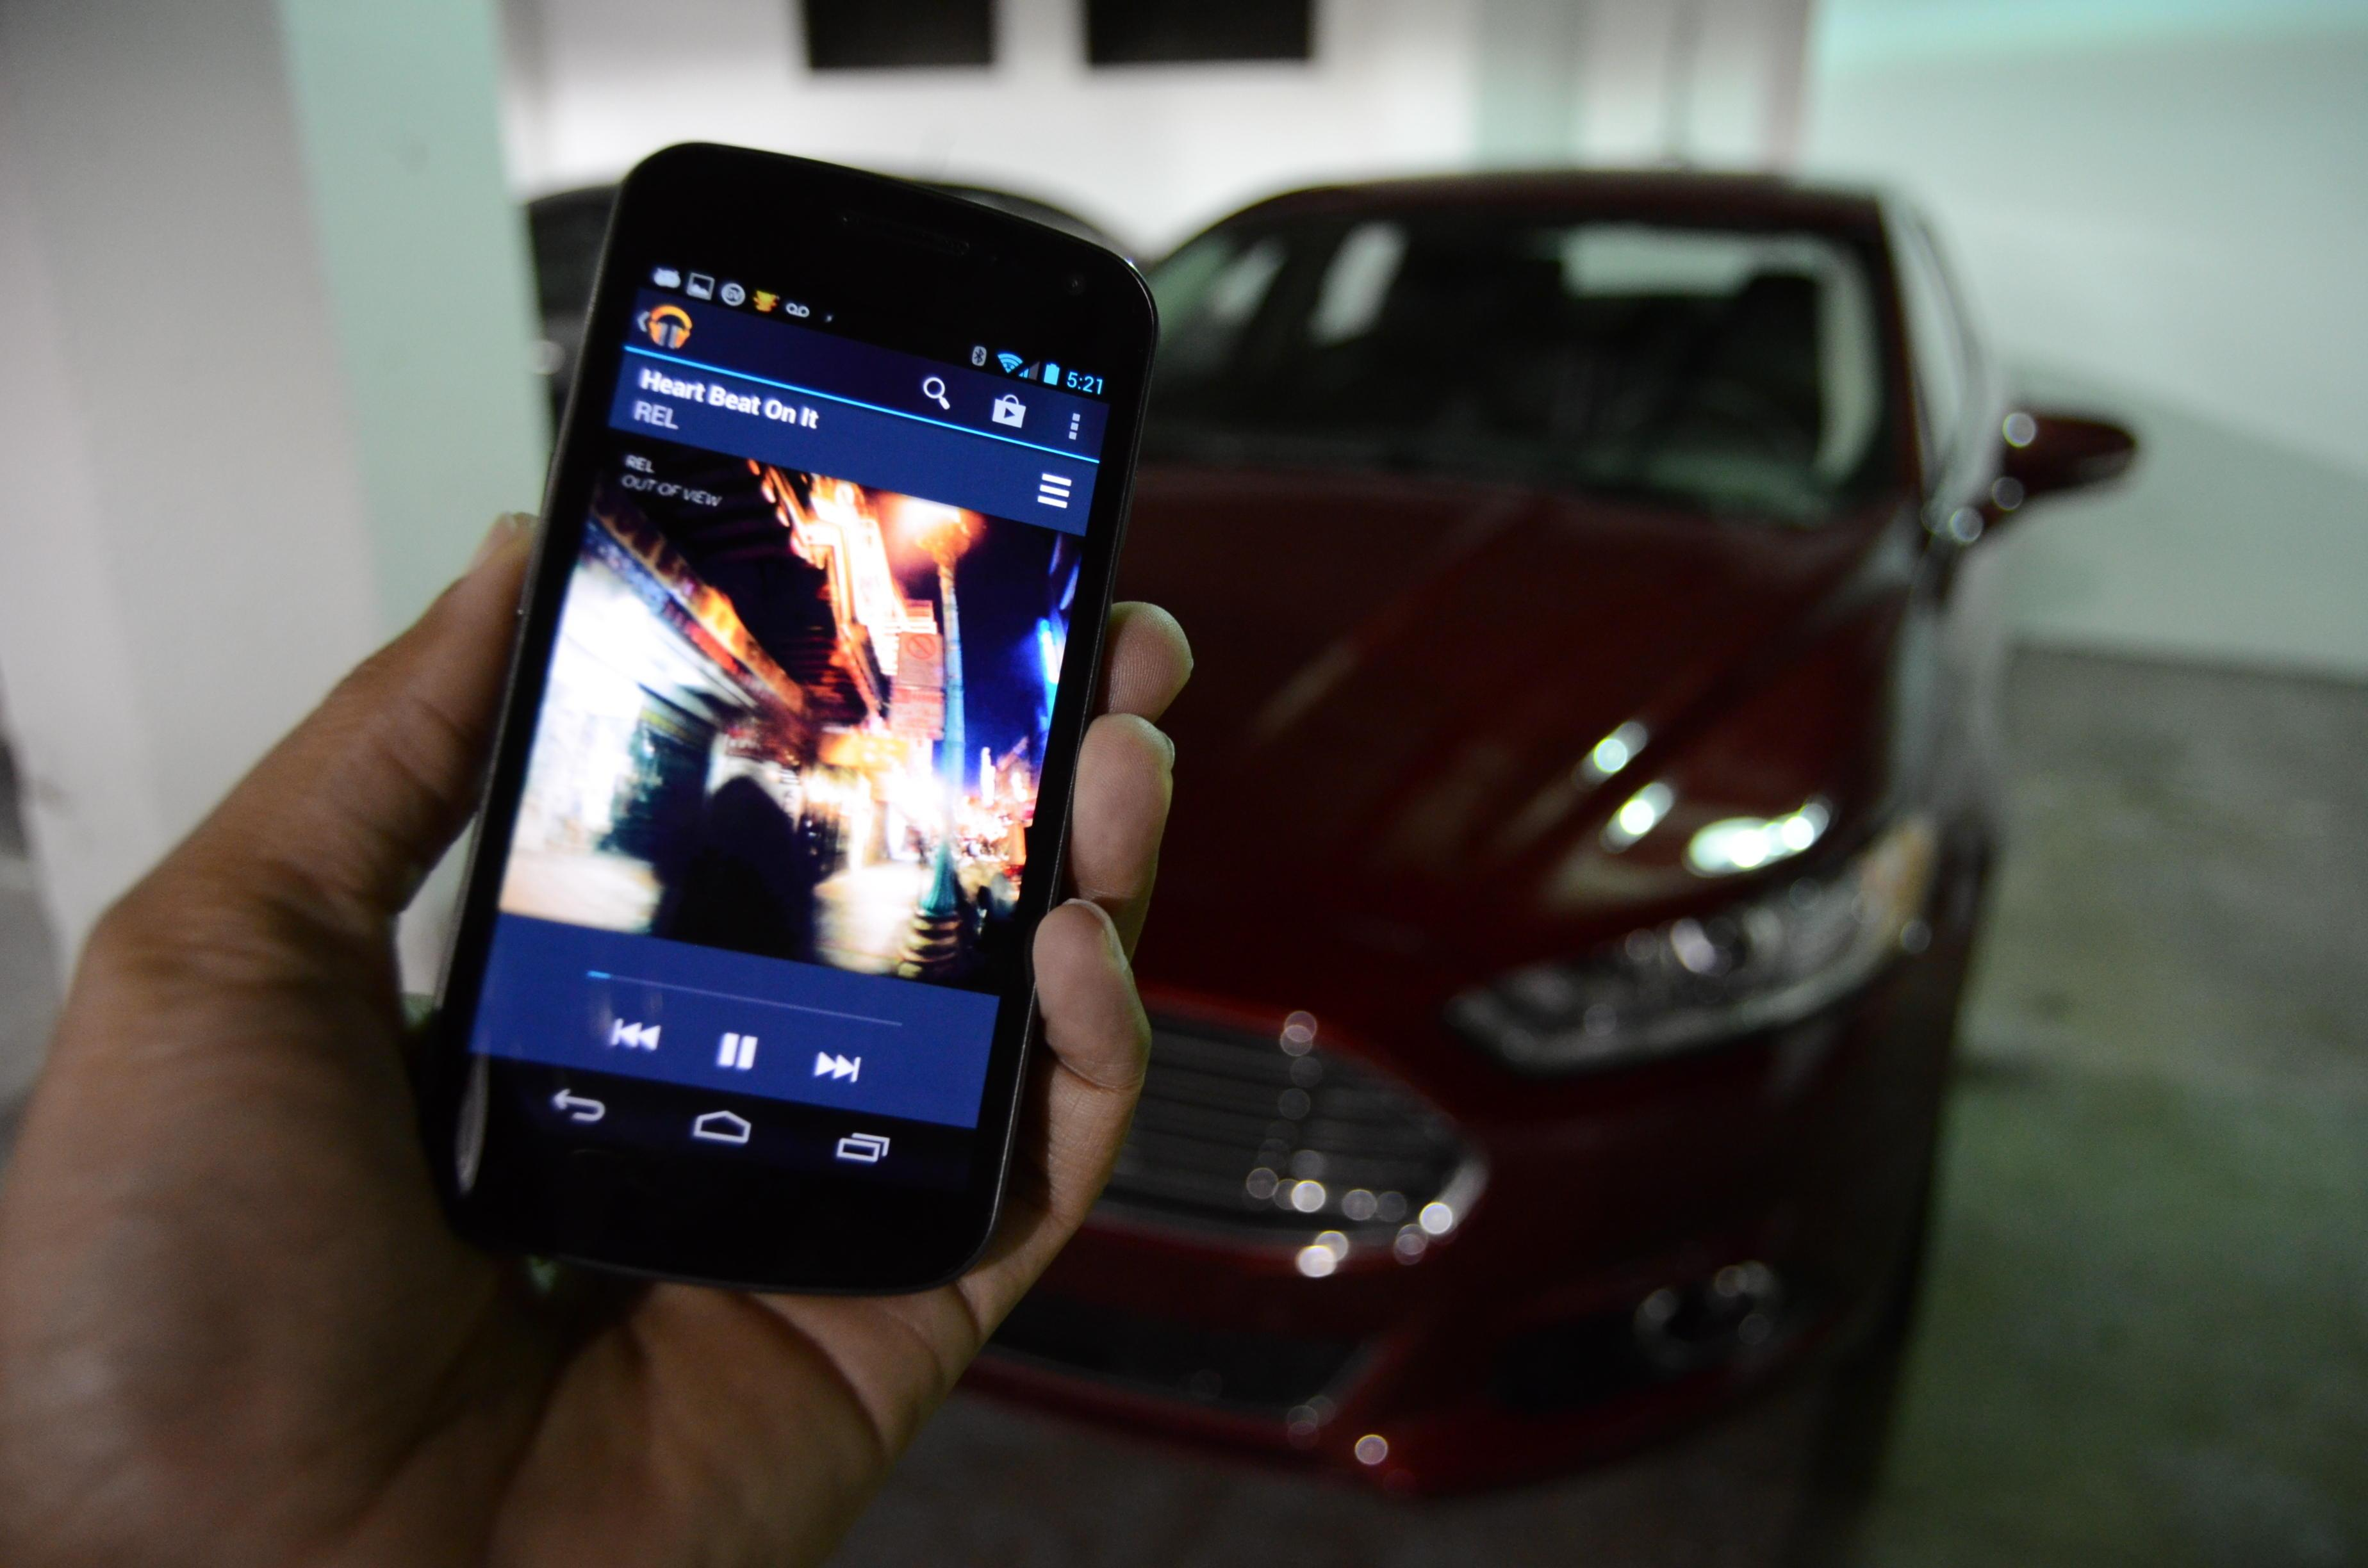 Car Tech's guide to using your Android phone in the car